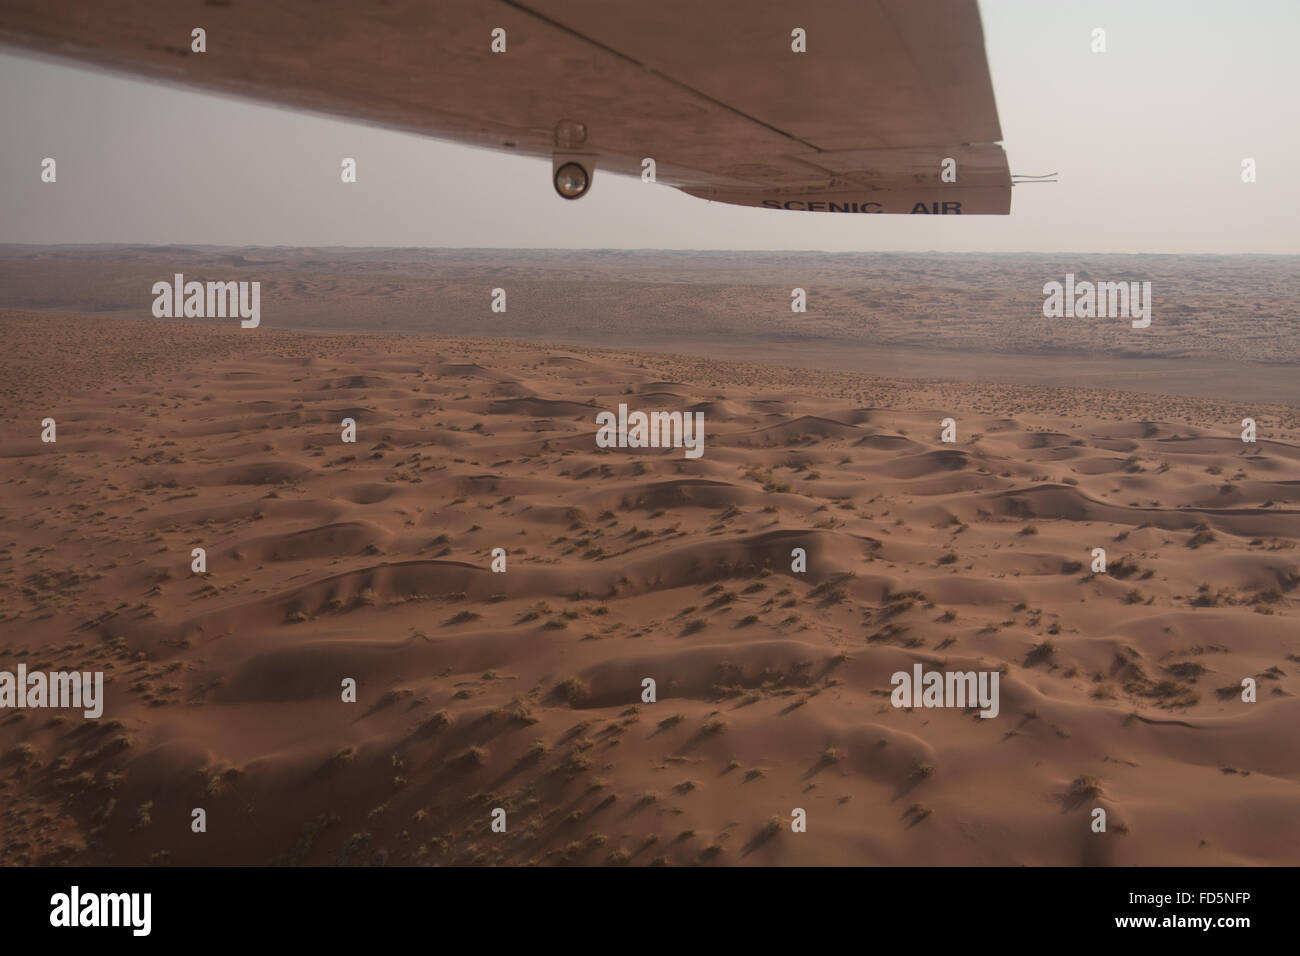 Cropped Image Of Airplane Flying Over Desert - Stock Image